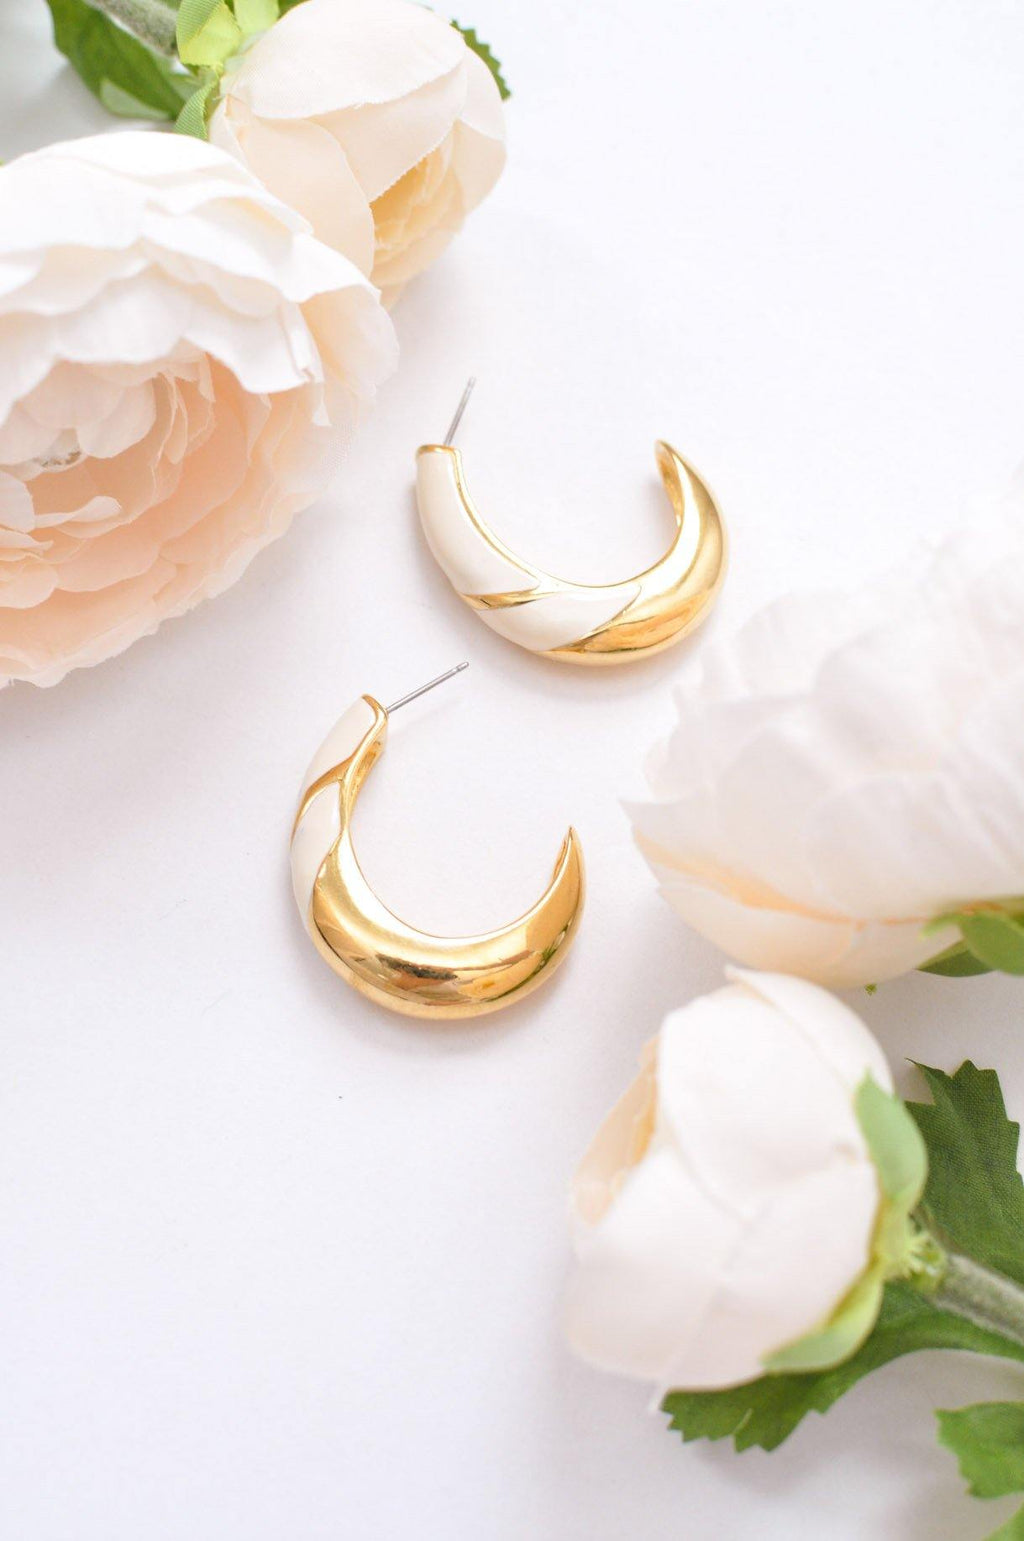 White Enamel Pierced Hoop Earrings